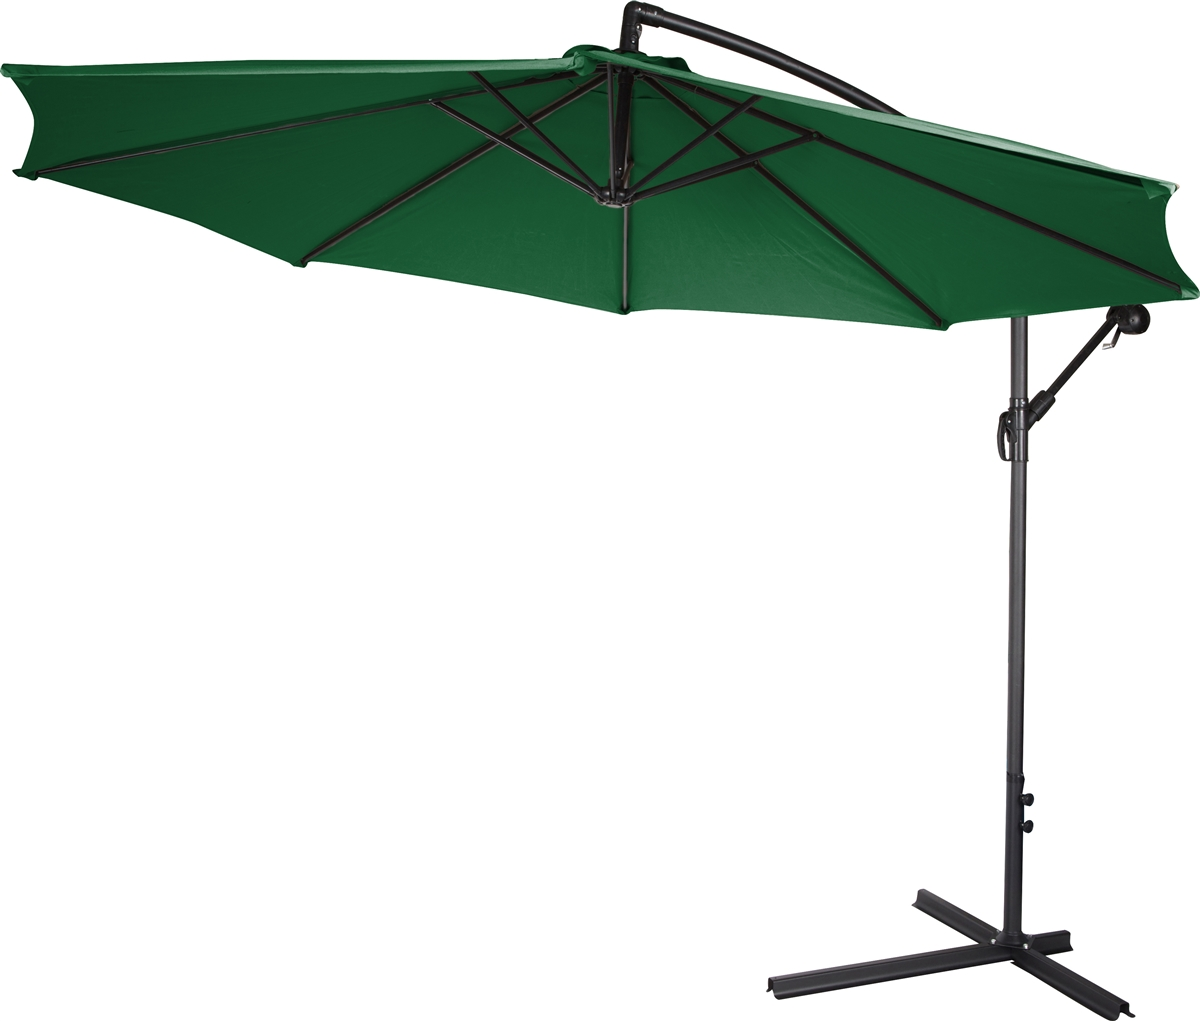 Acrylic Cantilever Offset 10ft Patio Umbrella By Trademark Innovations With Colorguard Fabric Green